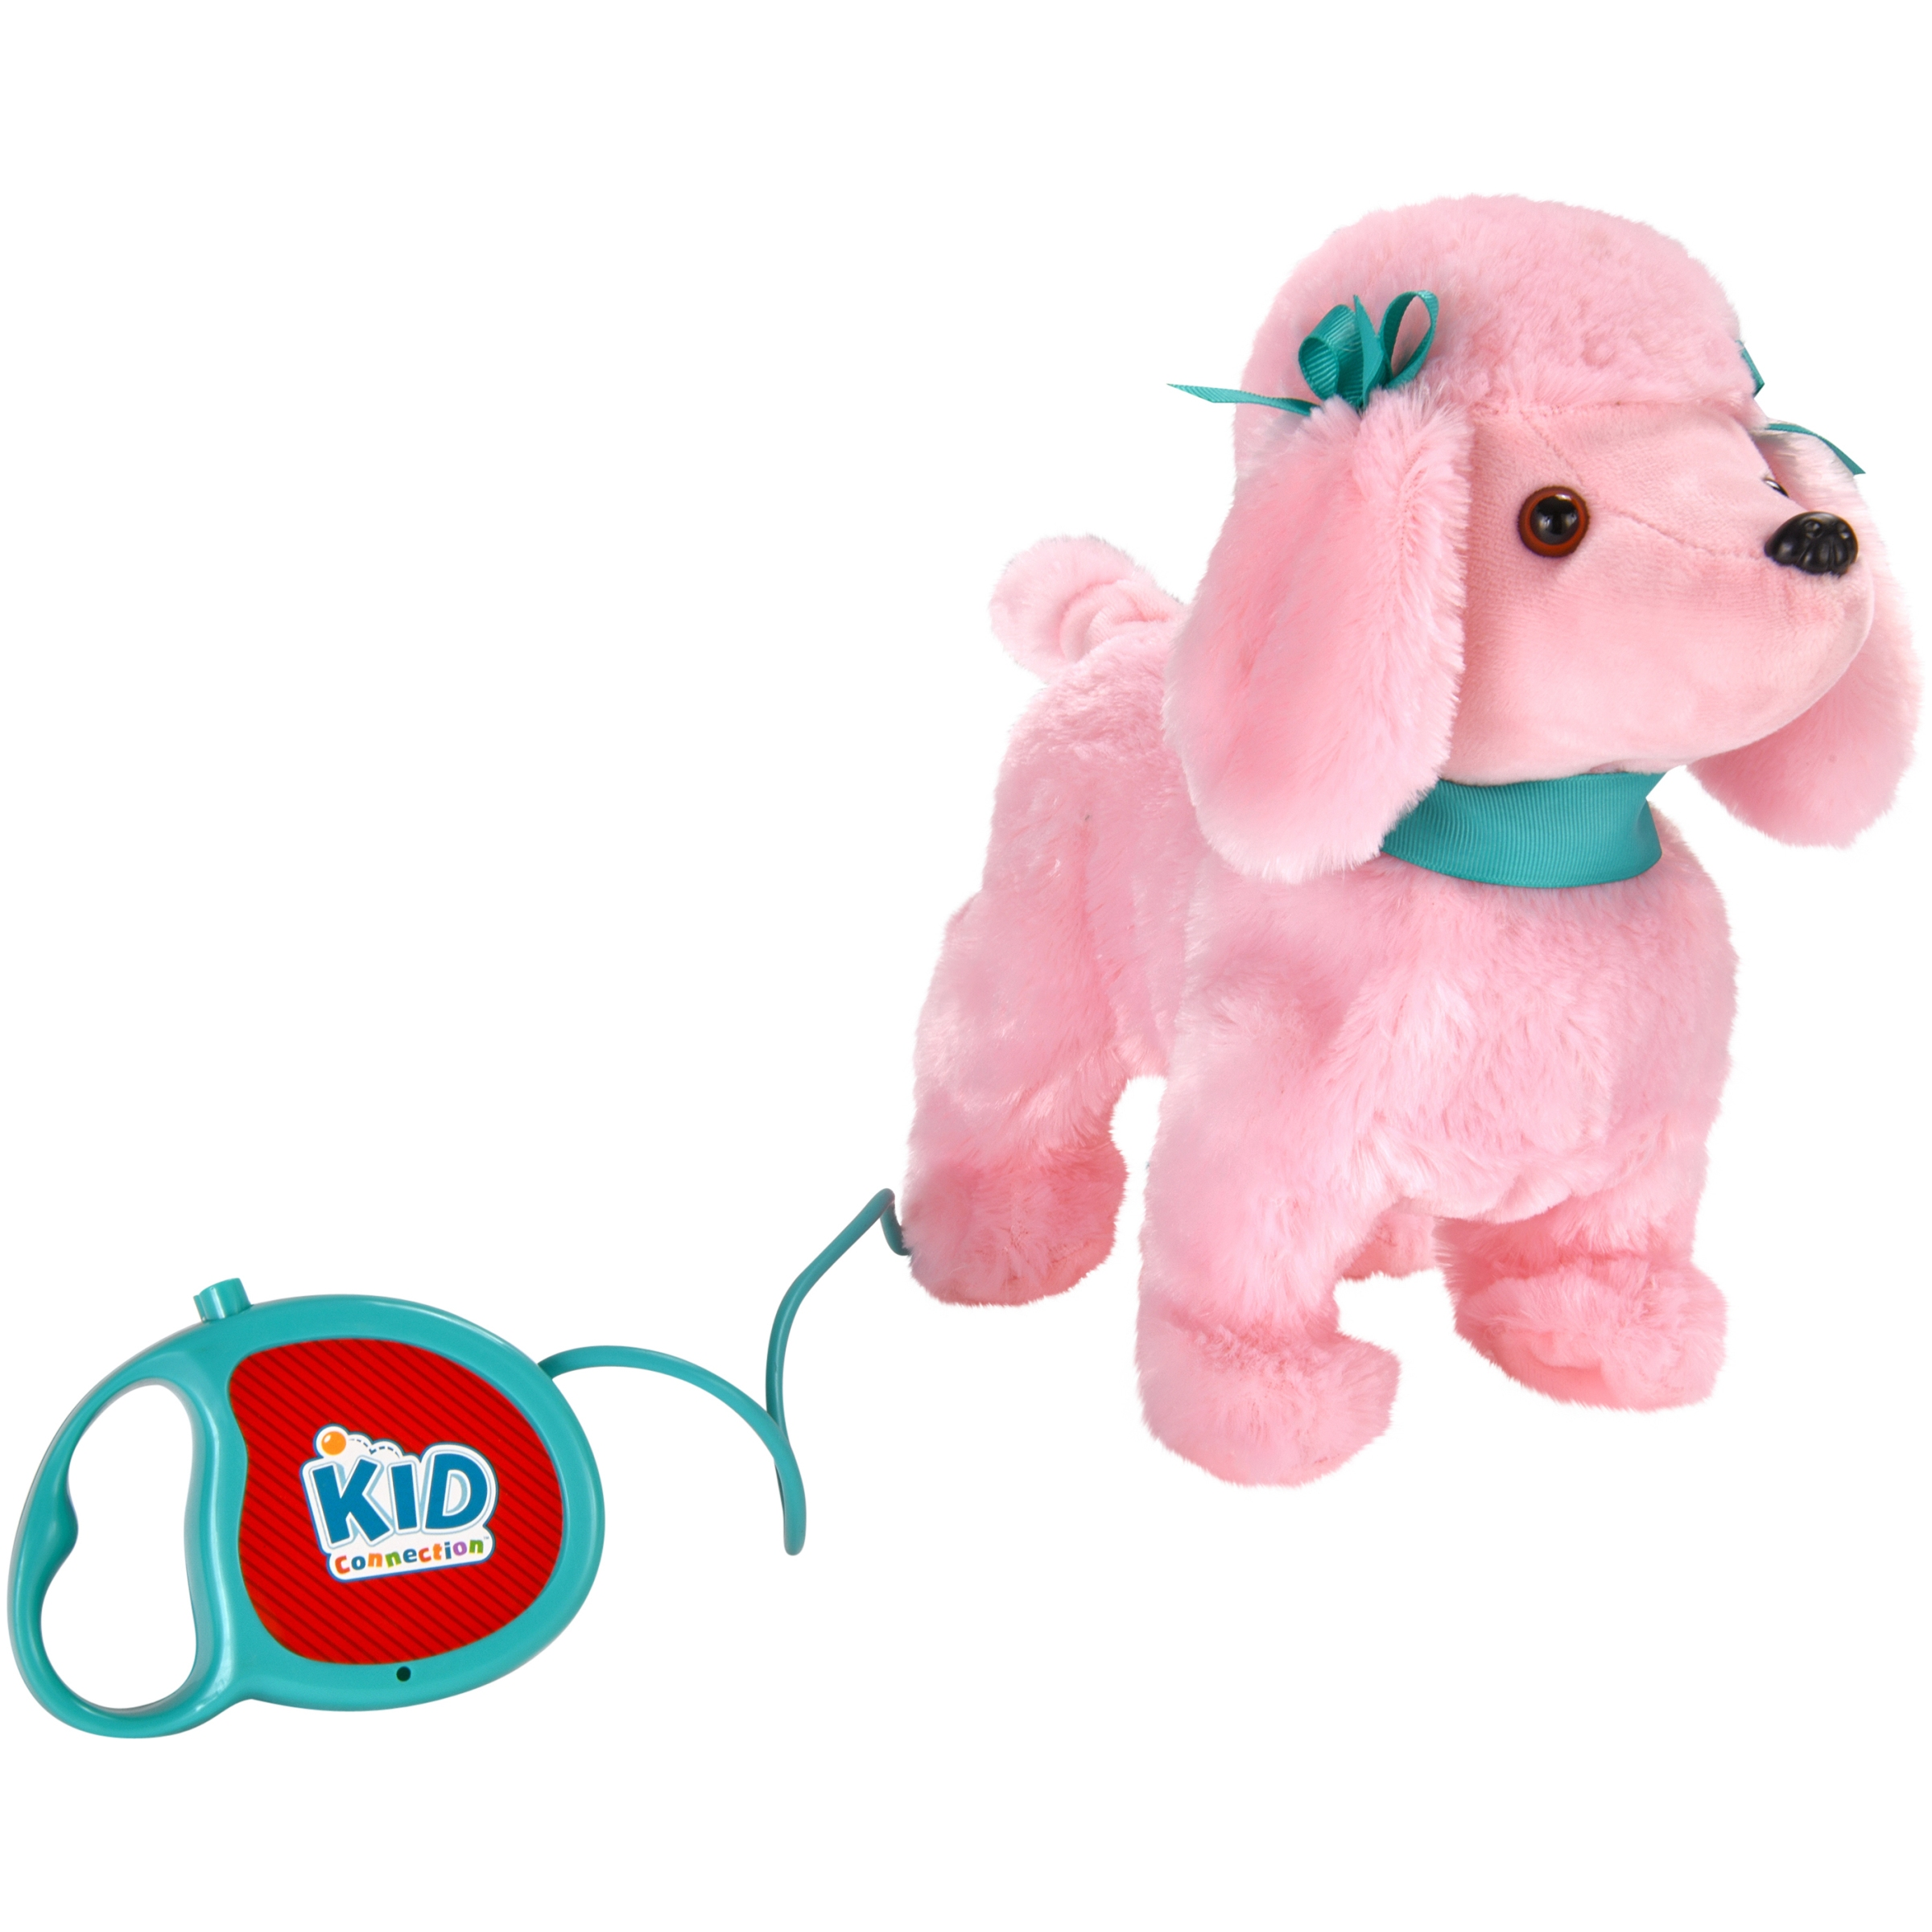 "Kid Connection 9"" Plush Poodle Walking Pet, Pink"